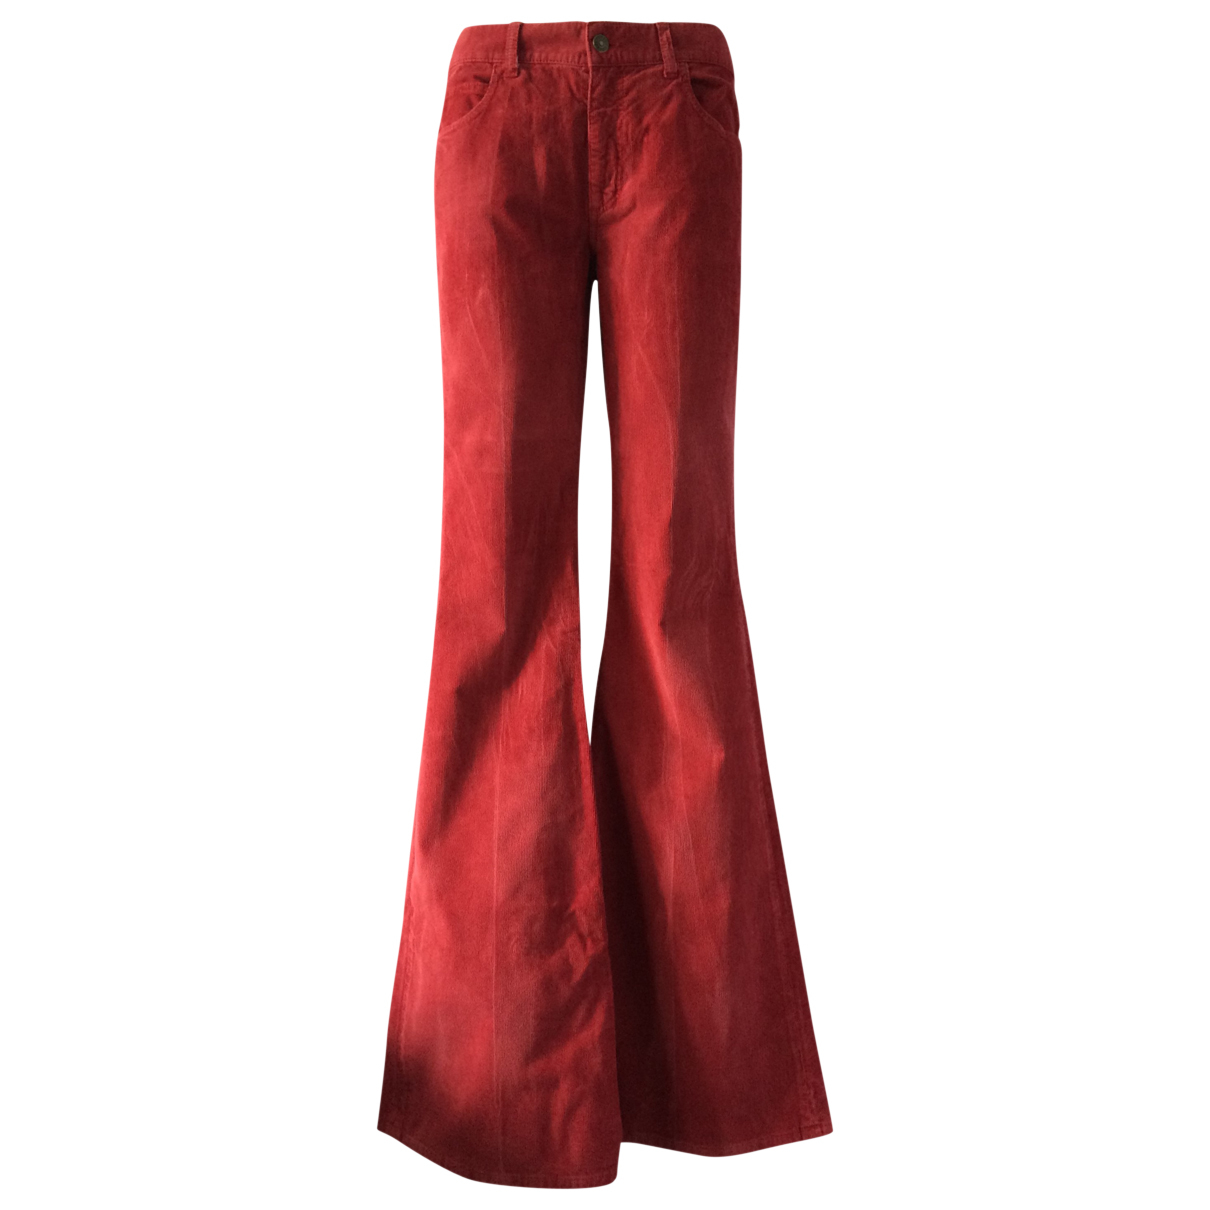 Gucci N Red Cotton Trousers for Women M International